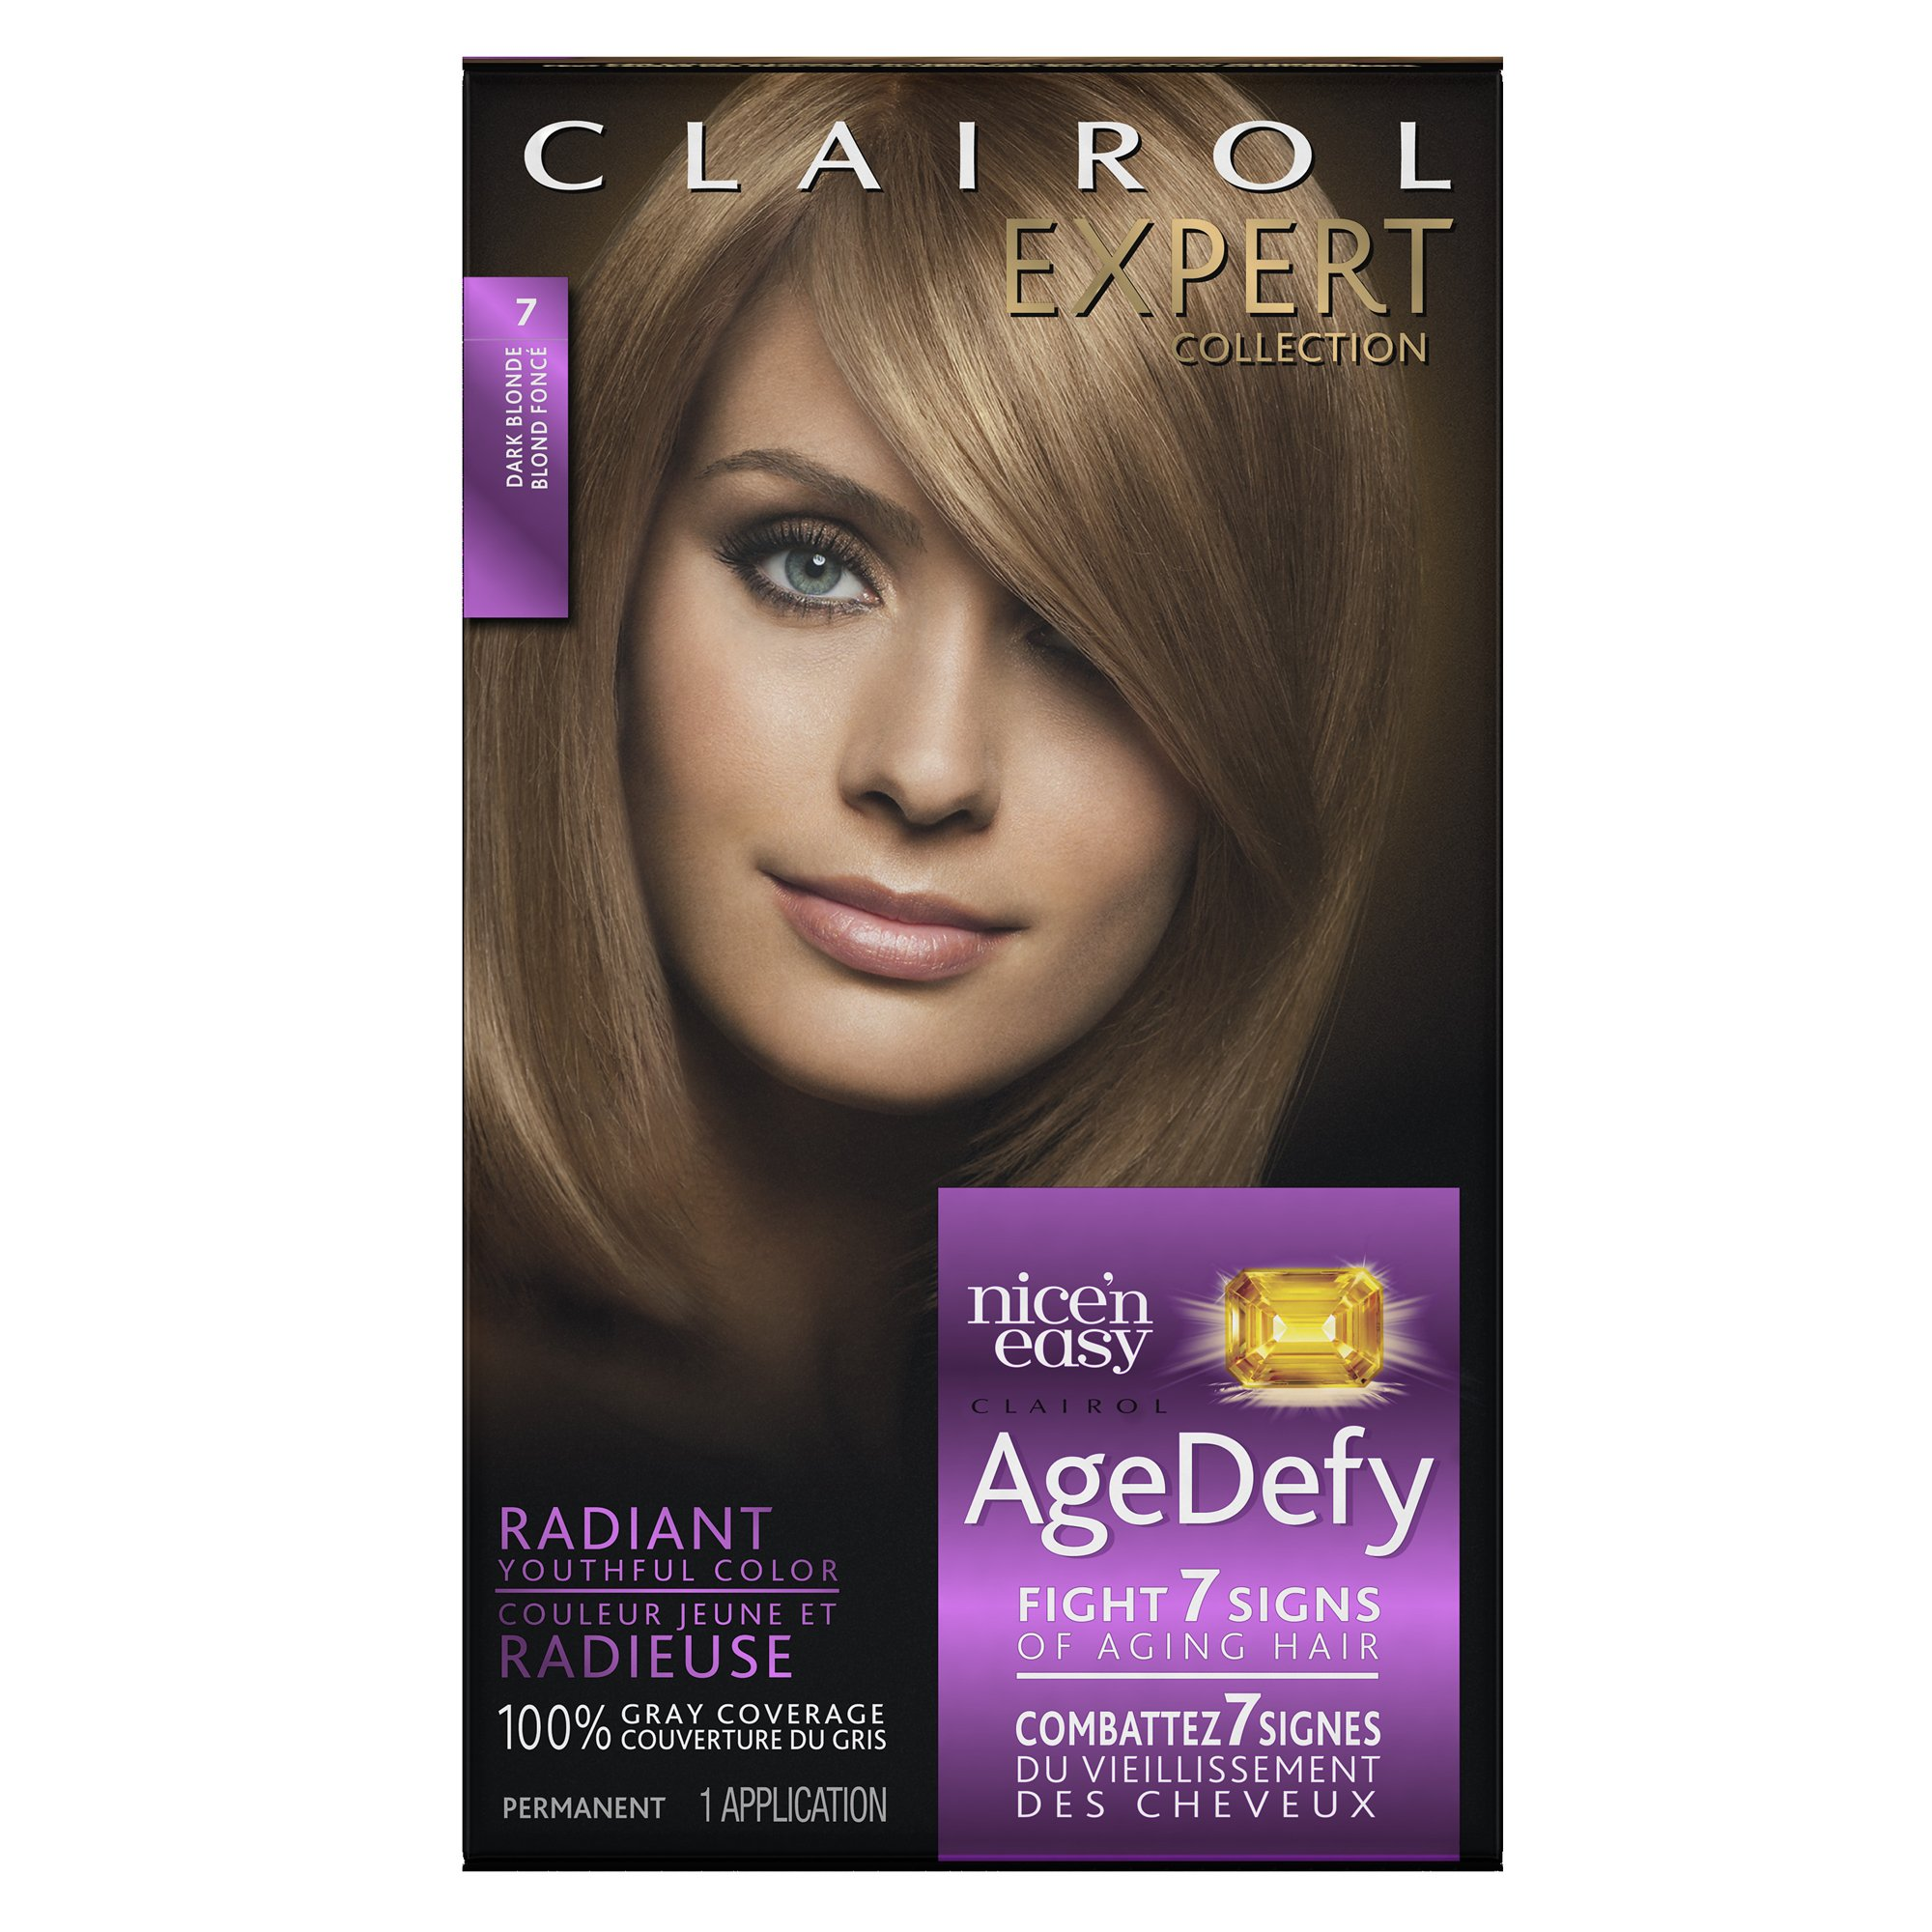 Clairol Age Defy Expert Collection, 7 Dark Blonde, Permanent Hair Color, 1 Kit (PACKAGING MAY VARY)